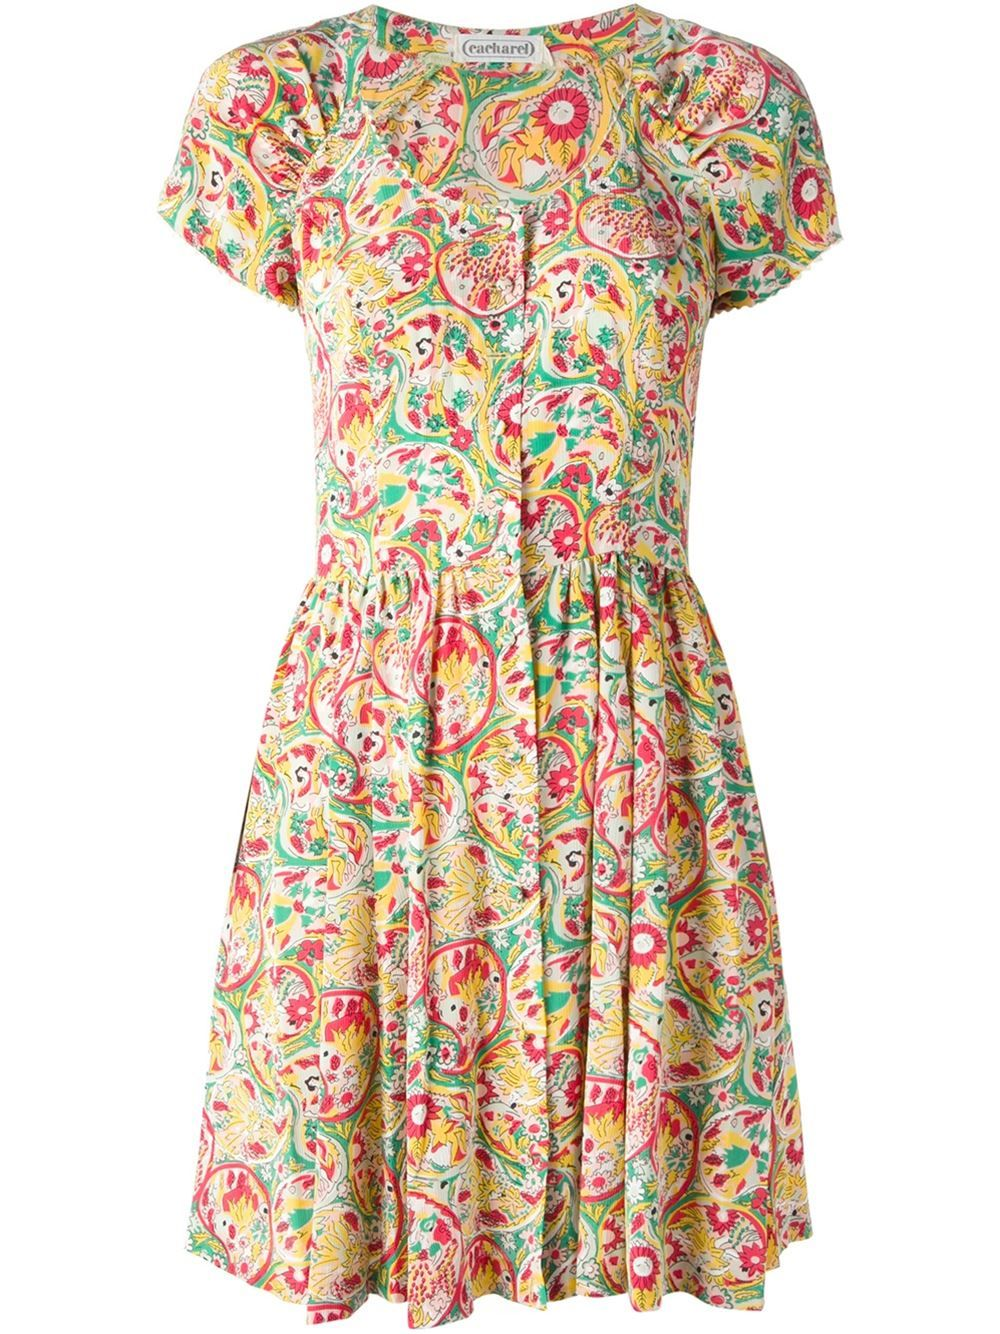 CACHAREL VINTAGE floral print skater dress farfetch.com | Cacharel ...